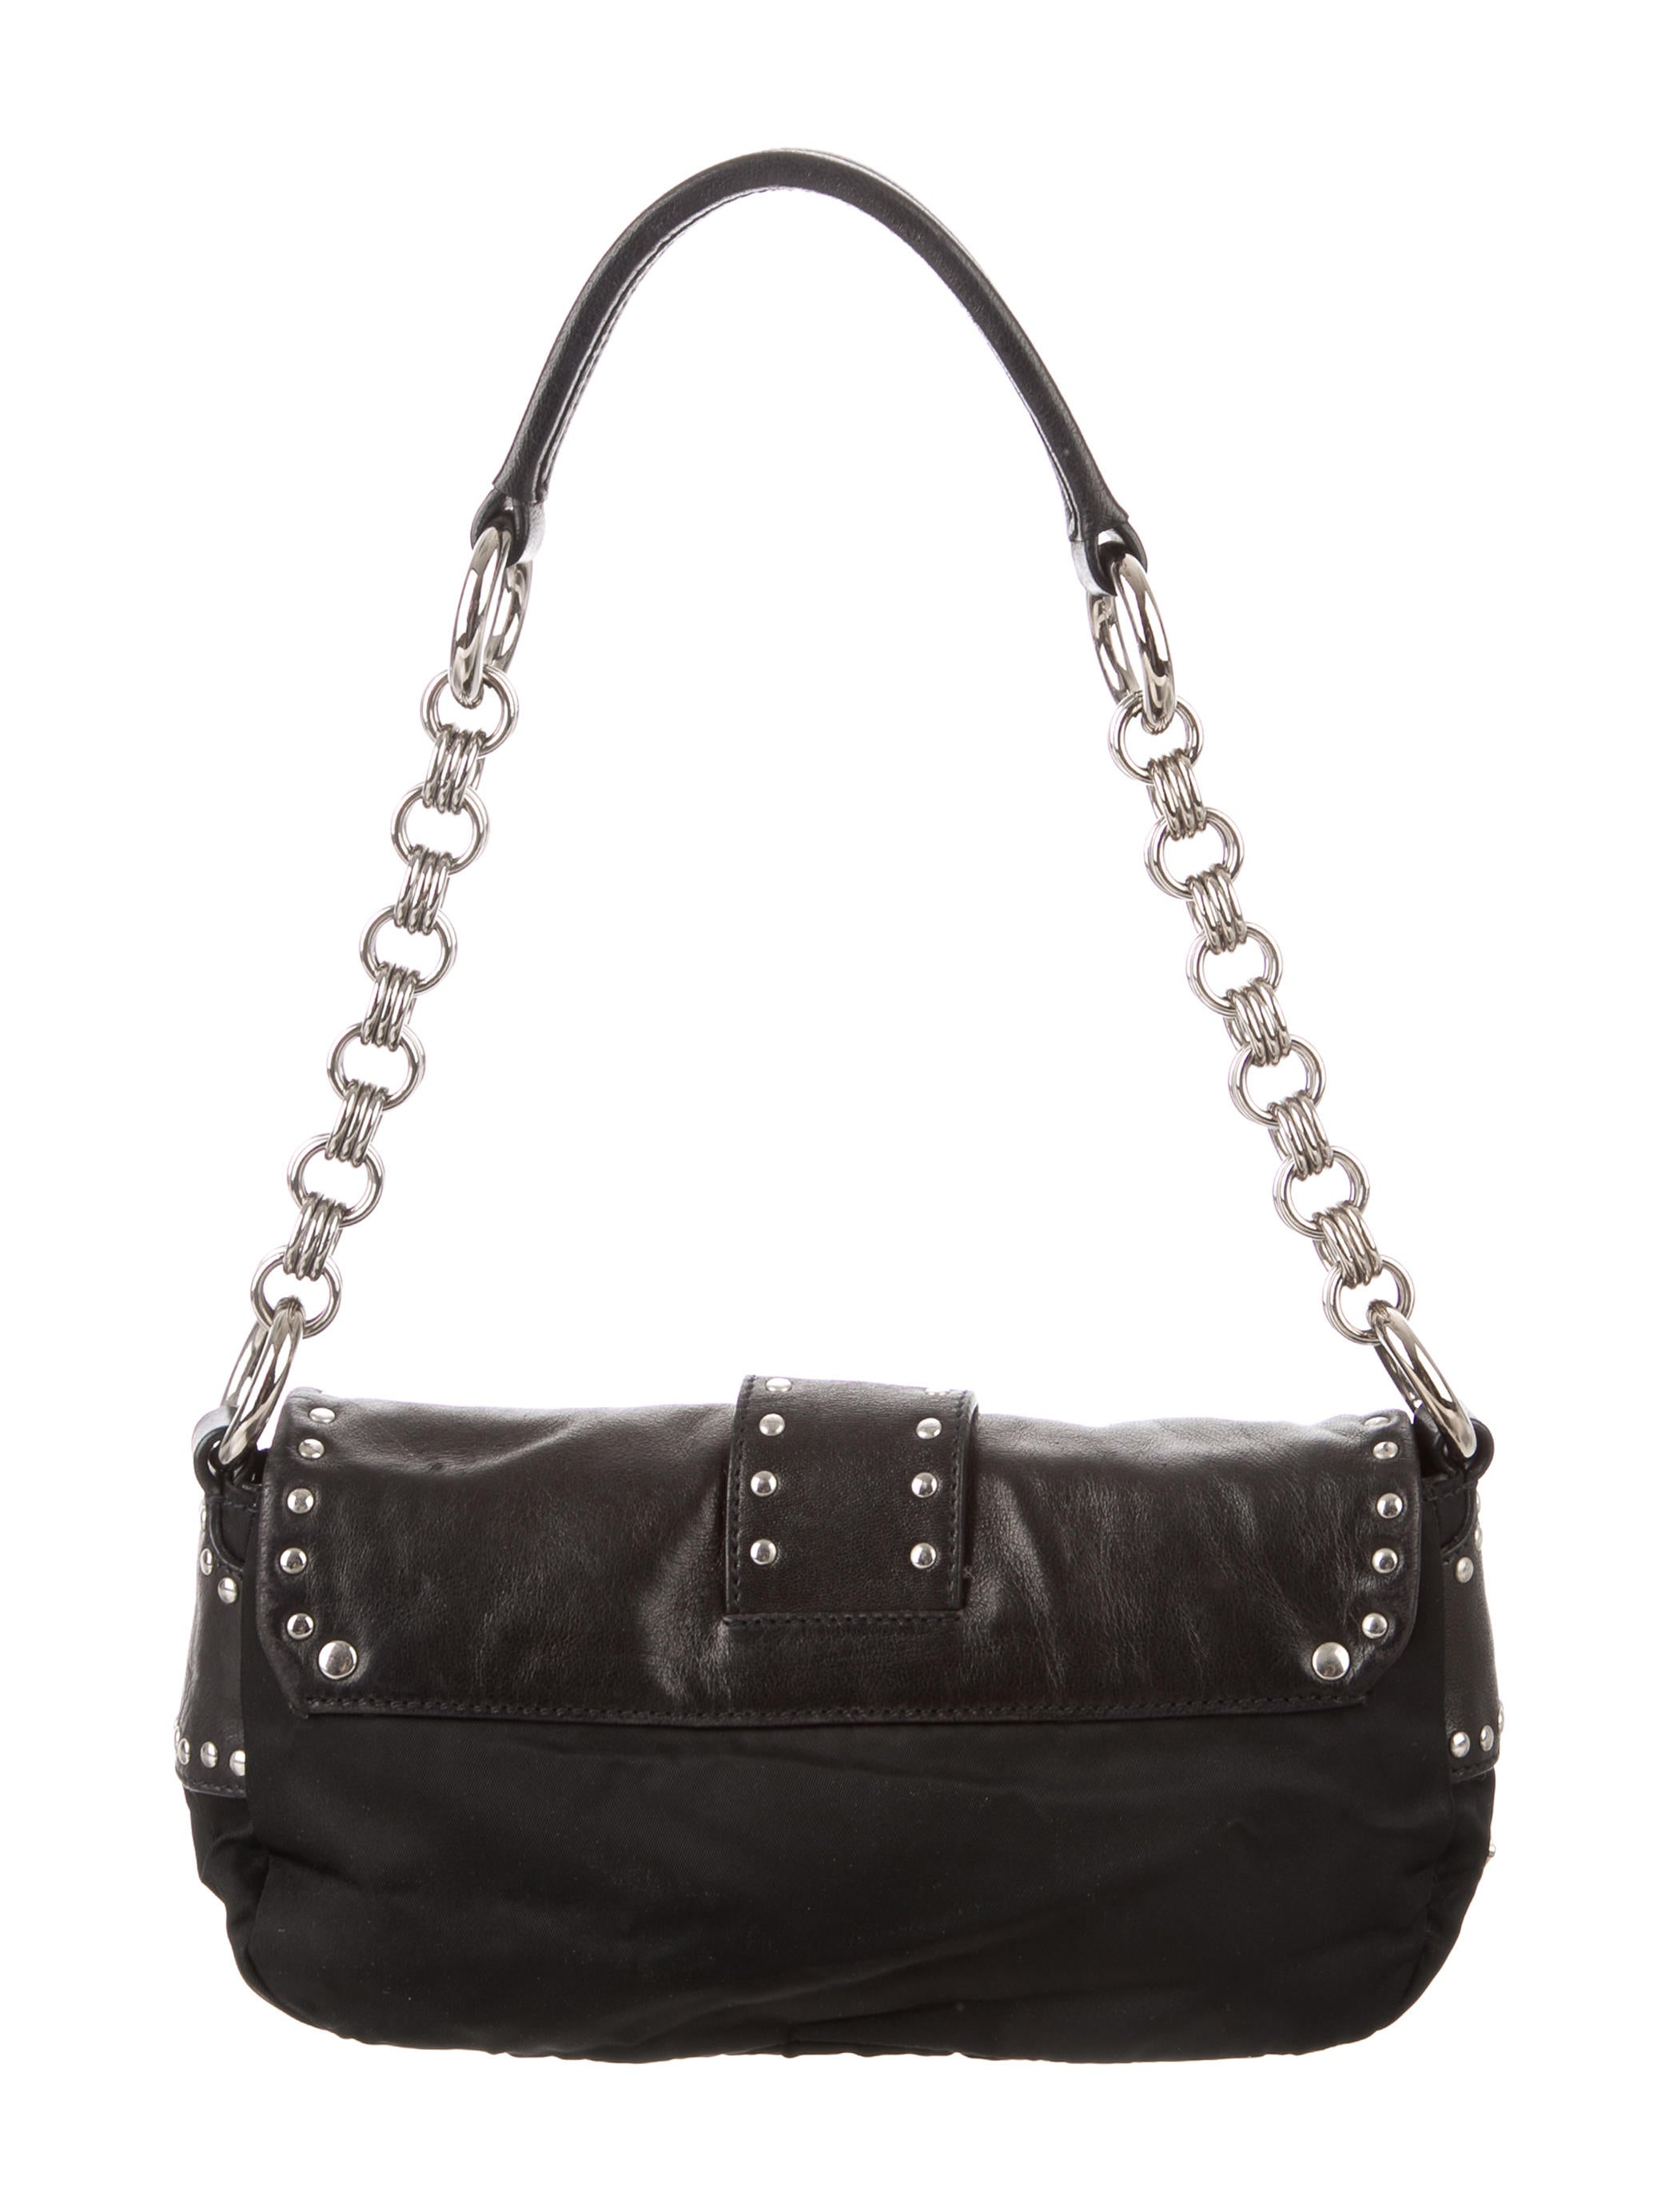 2e7a0b0732e2bd Prada Leather Baguette Bag | Stanford Center for Opportunity Policy ...